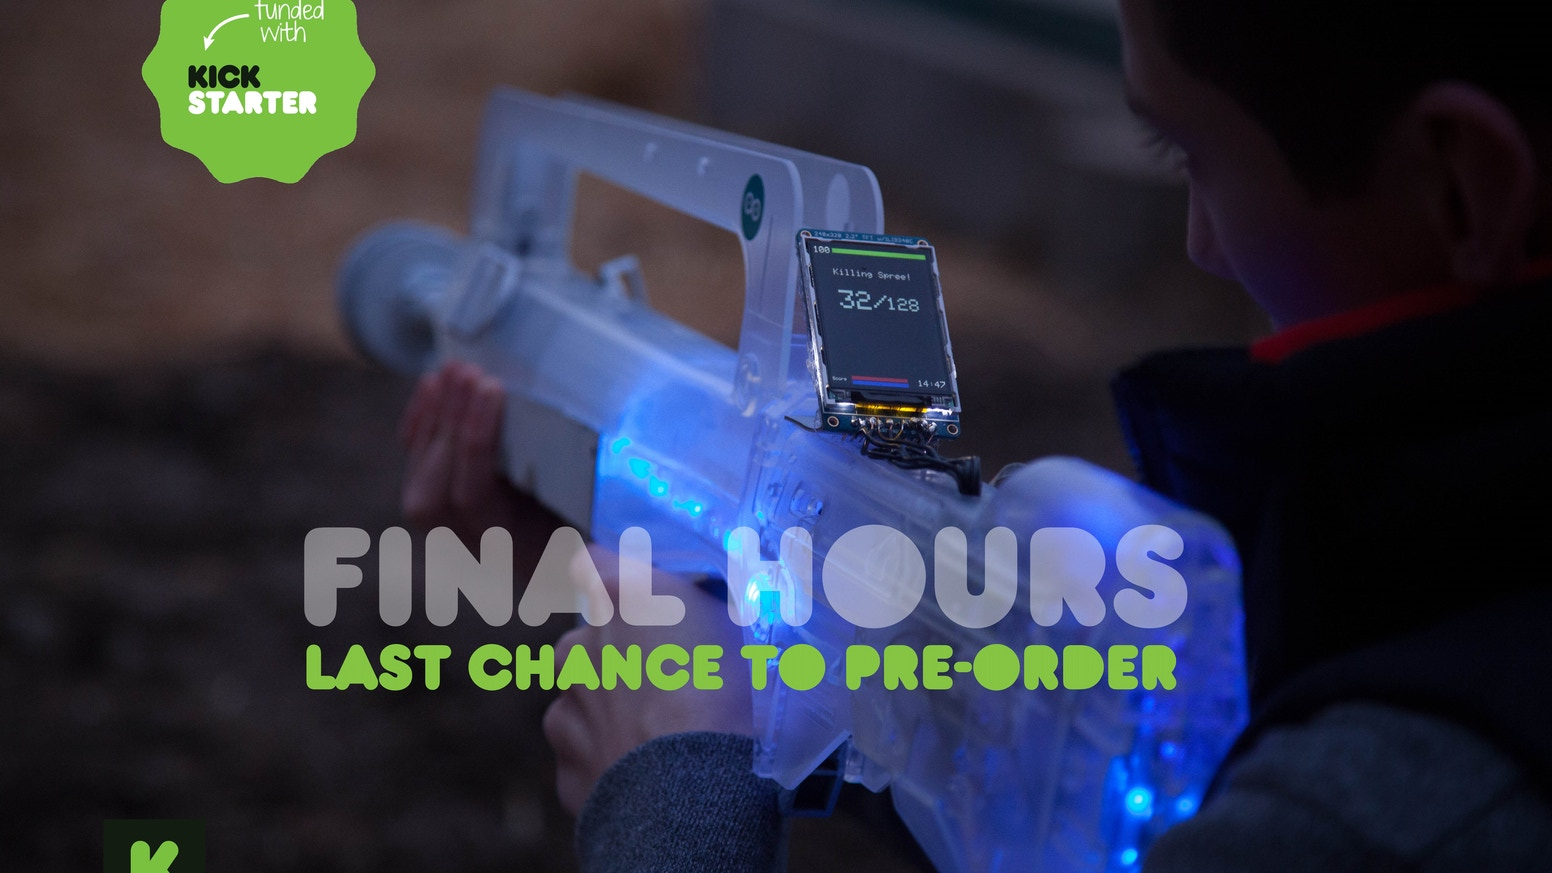 Skirmos Open Source Laser Tag By Kickstarter 115 Projects Diy Circuit Board Falsh Toy Integrated Electronic The Most Advanced System Create Your Own Indoor Or Outdoor Battlefield